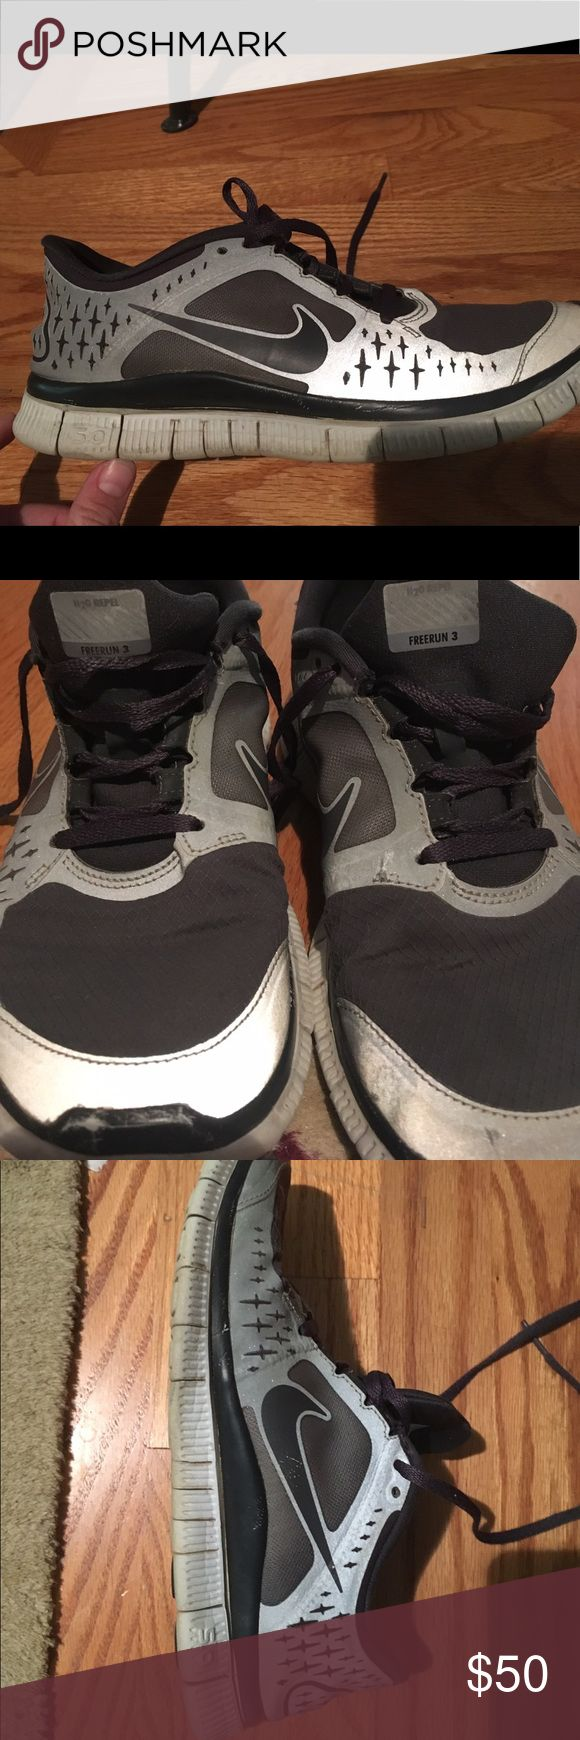 NIKE FREE RUNS 3 (H2O REPEL) Size 8 - dark grey and light grey reflective shoes Nike Shoes Athletic Shoes